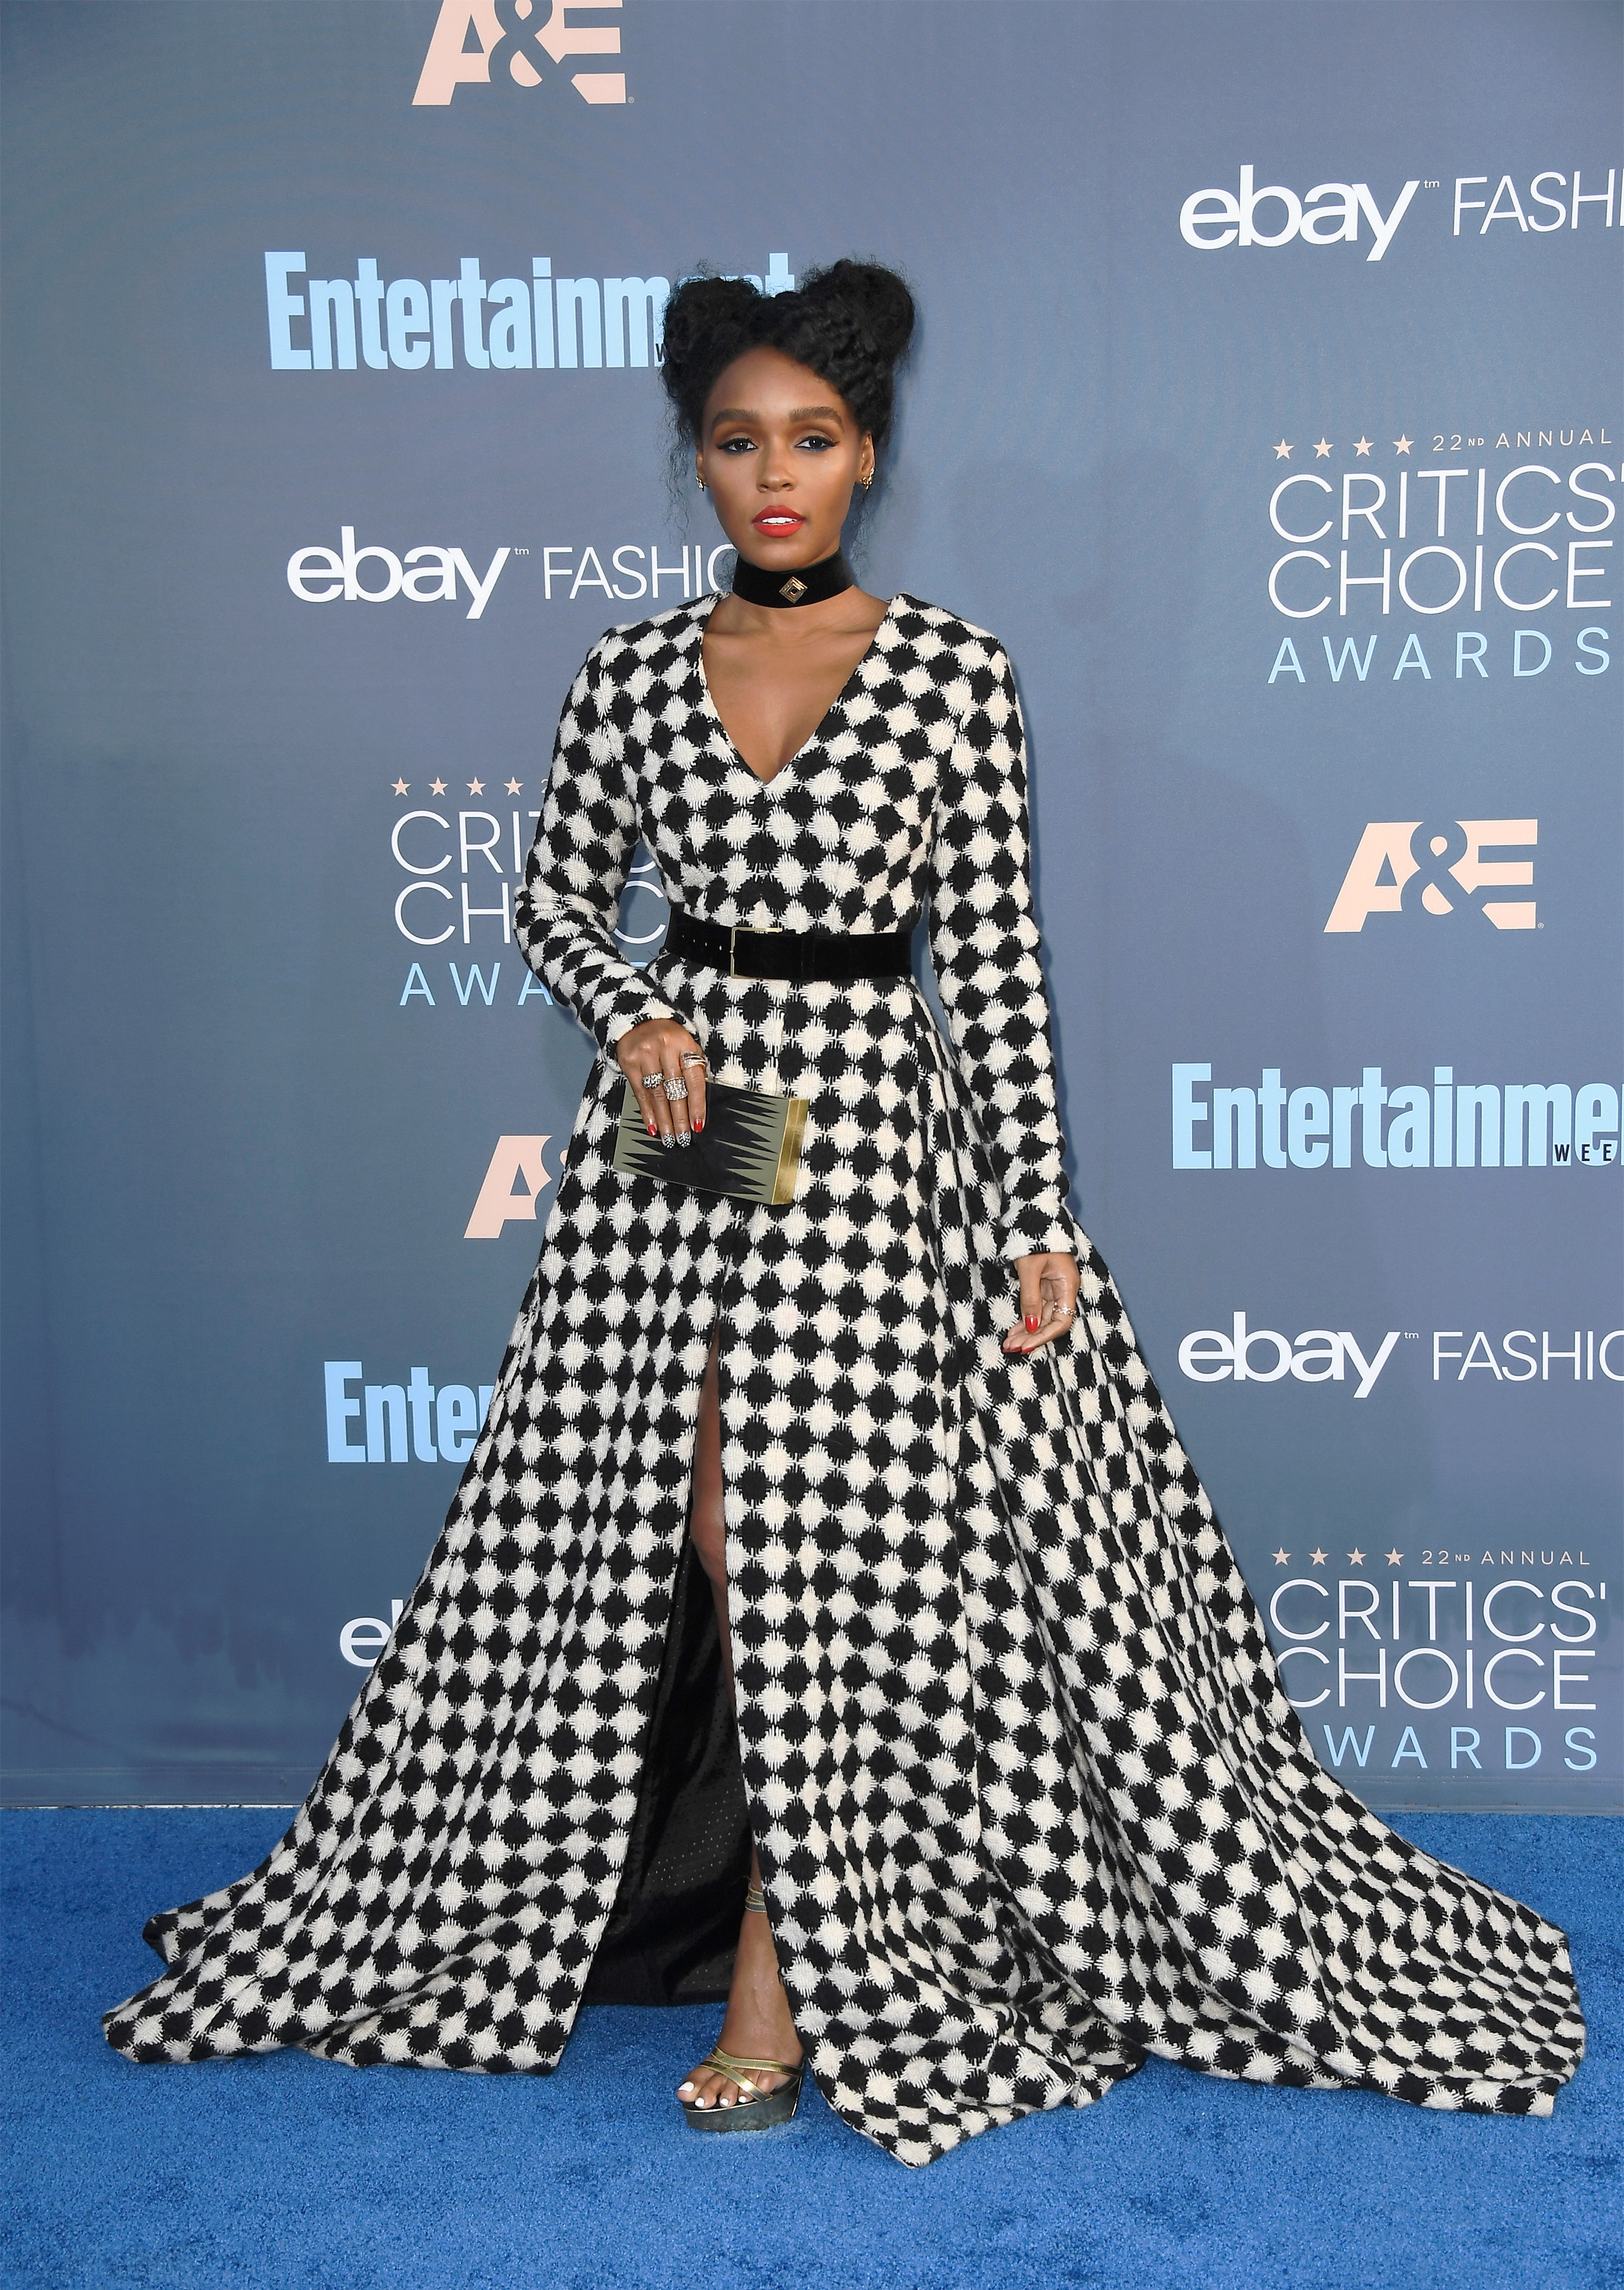 Only Janelle Monae could pull of the trinity of checkerboard, choker, and Spice Girl buns.